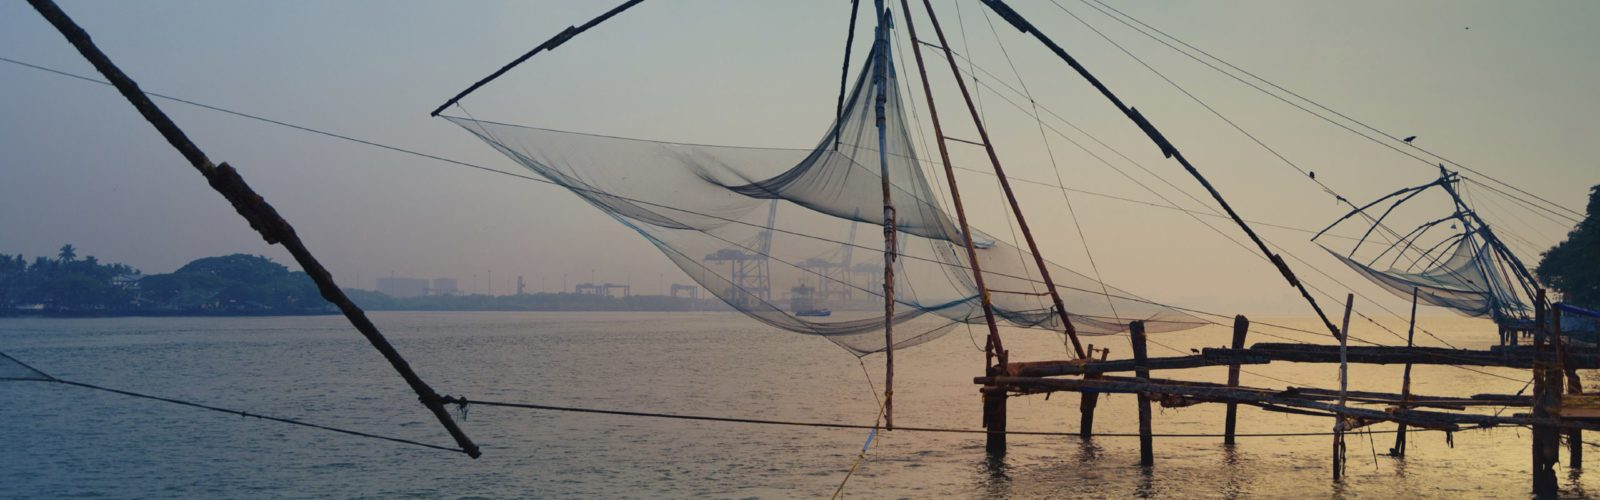 fishing-nets-fort-cochin-kerala-india